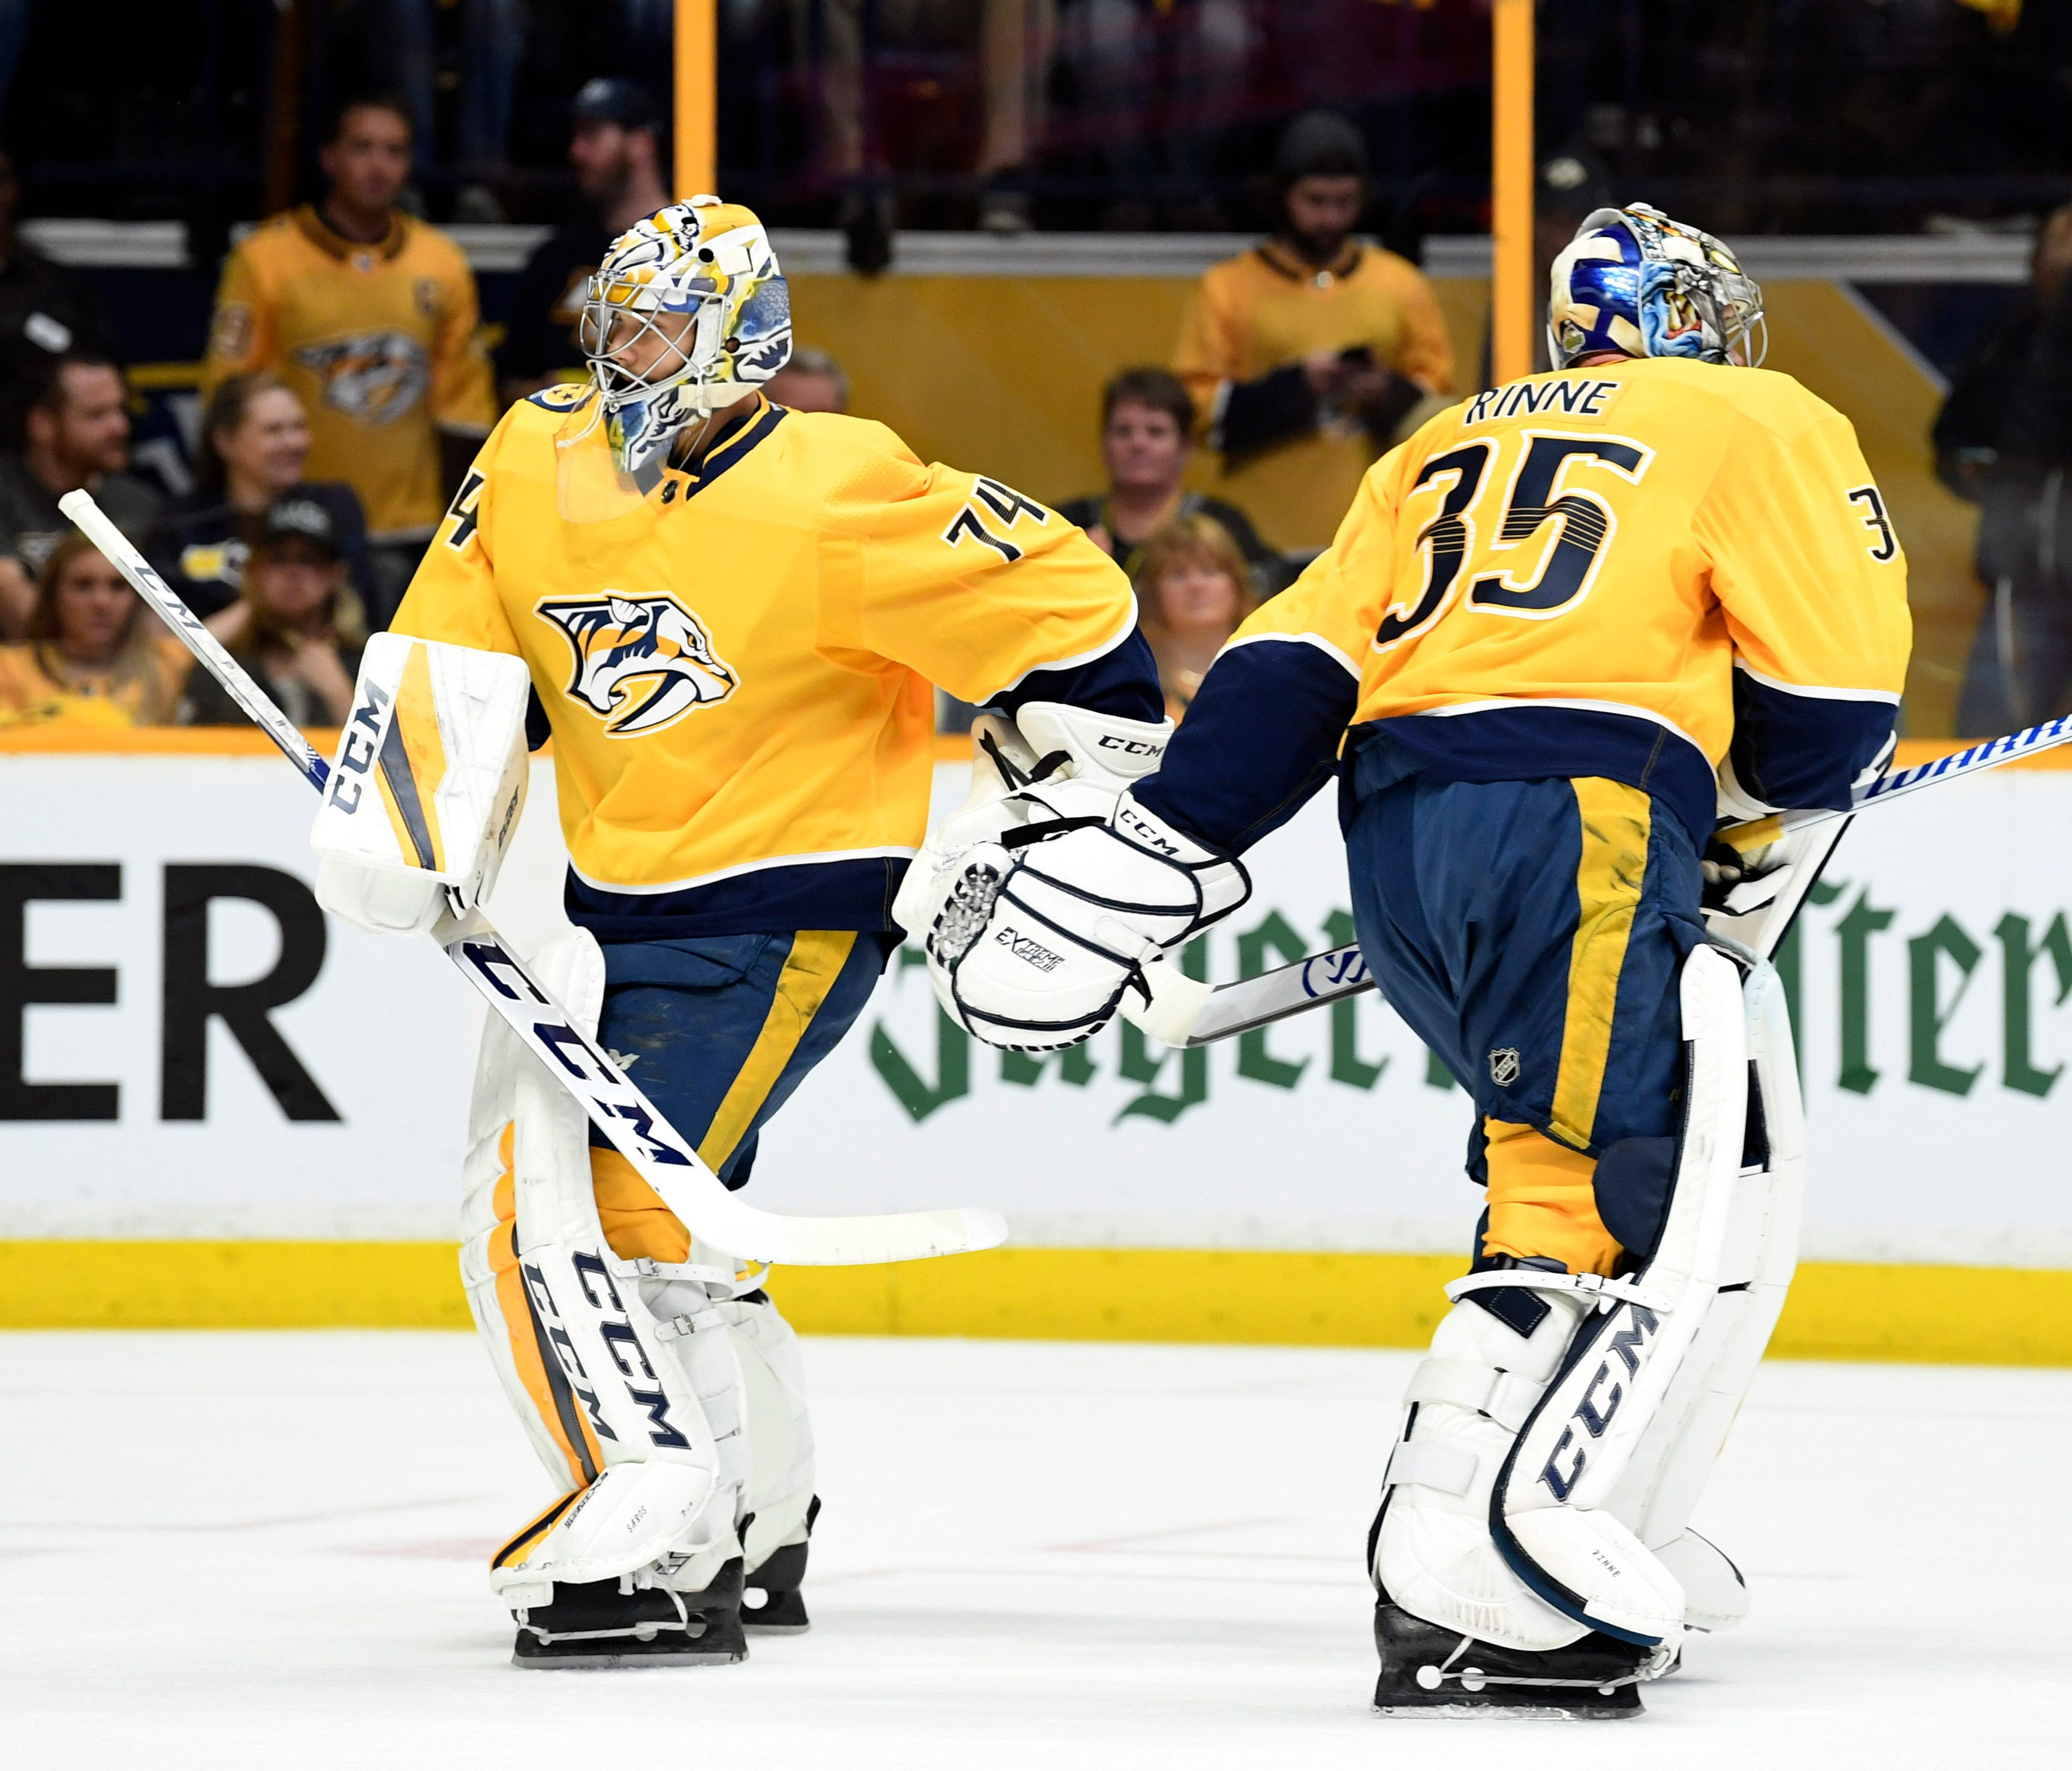 Nashville Predators goalie Pekka Rinne (35) is taken out of the game for goalie Juuse Saros (74) after allowing a two goals during the first period against the Winnipeg Jets in Game 7.